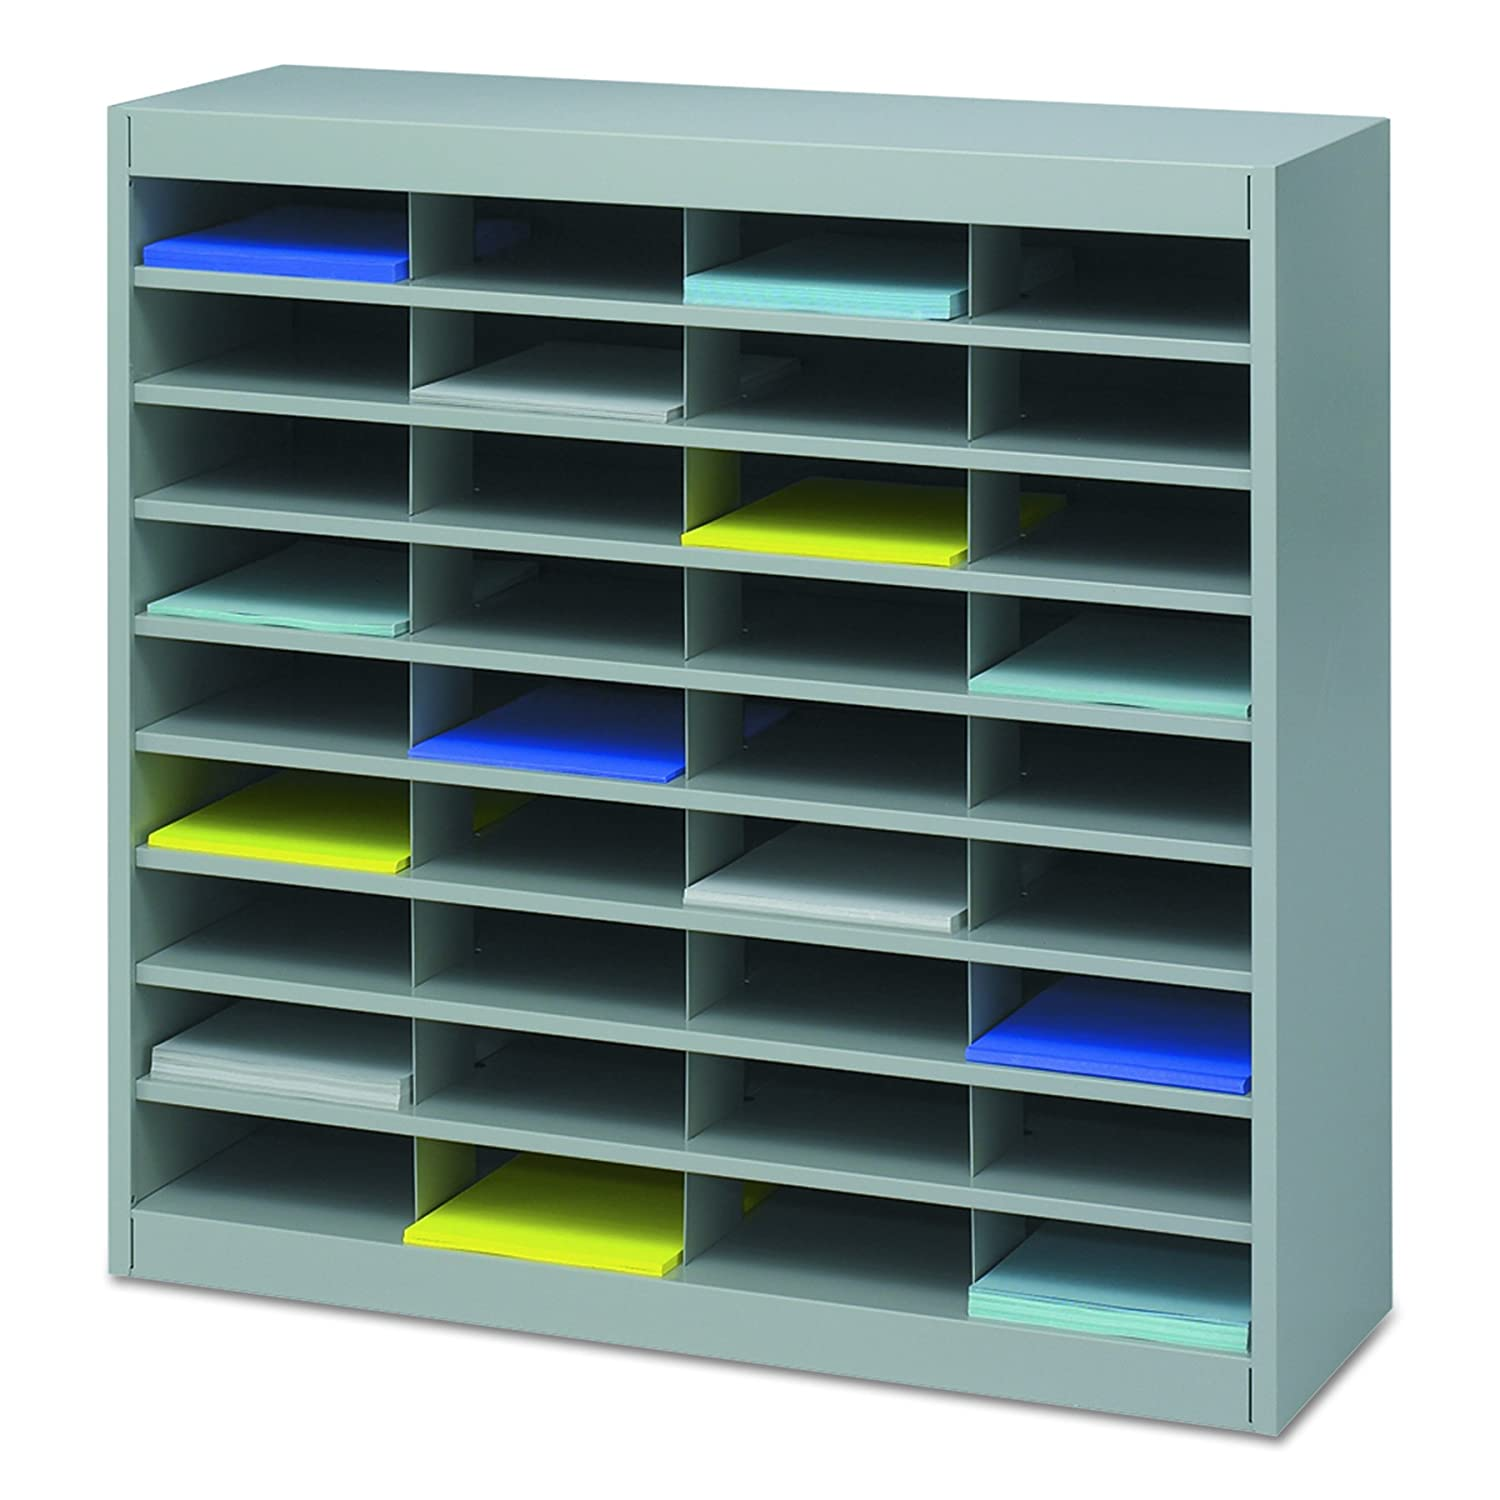 Amazon.com : Safco Products 9221GRR E-Z Stor Literature Organizer ...